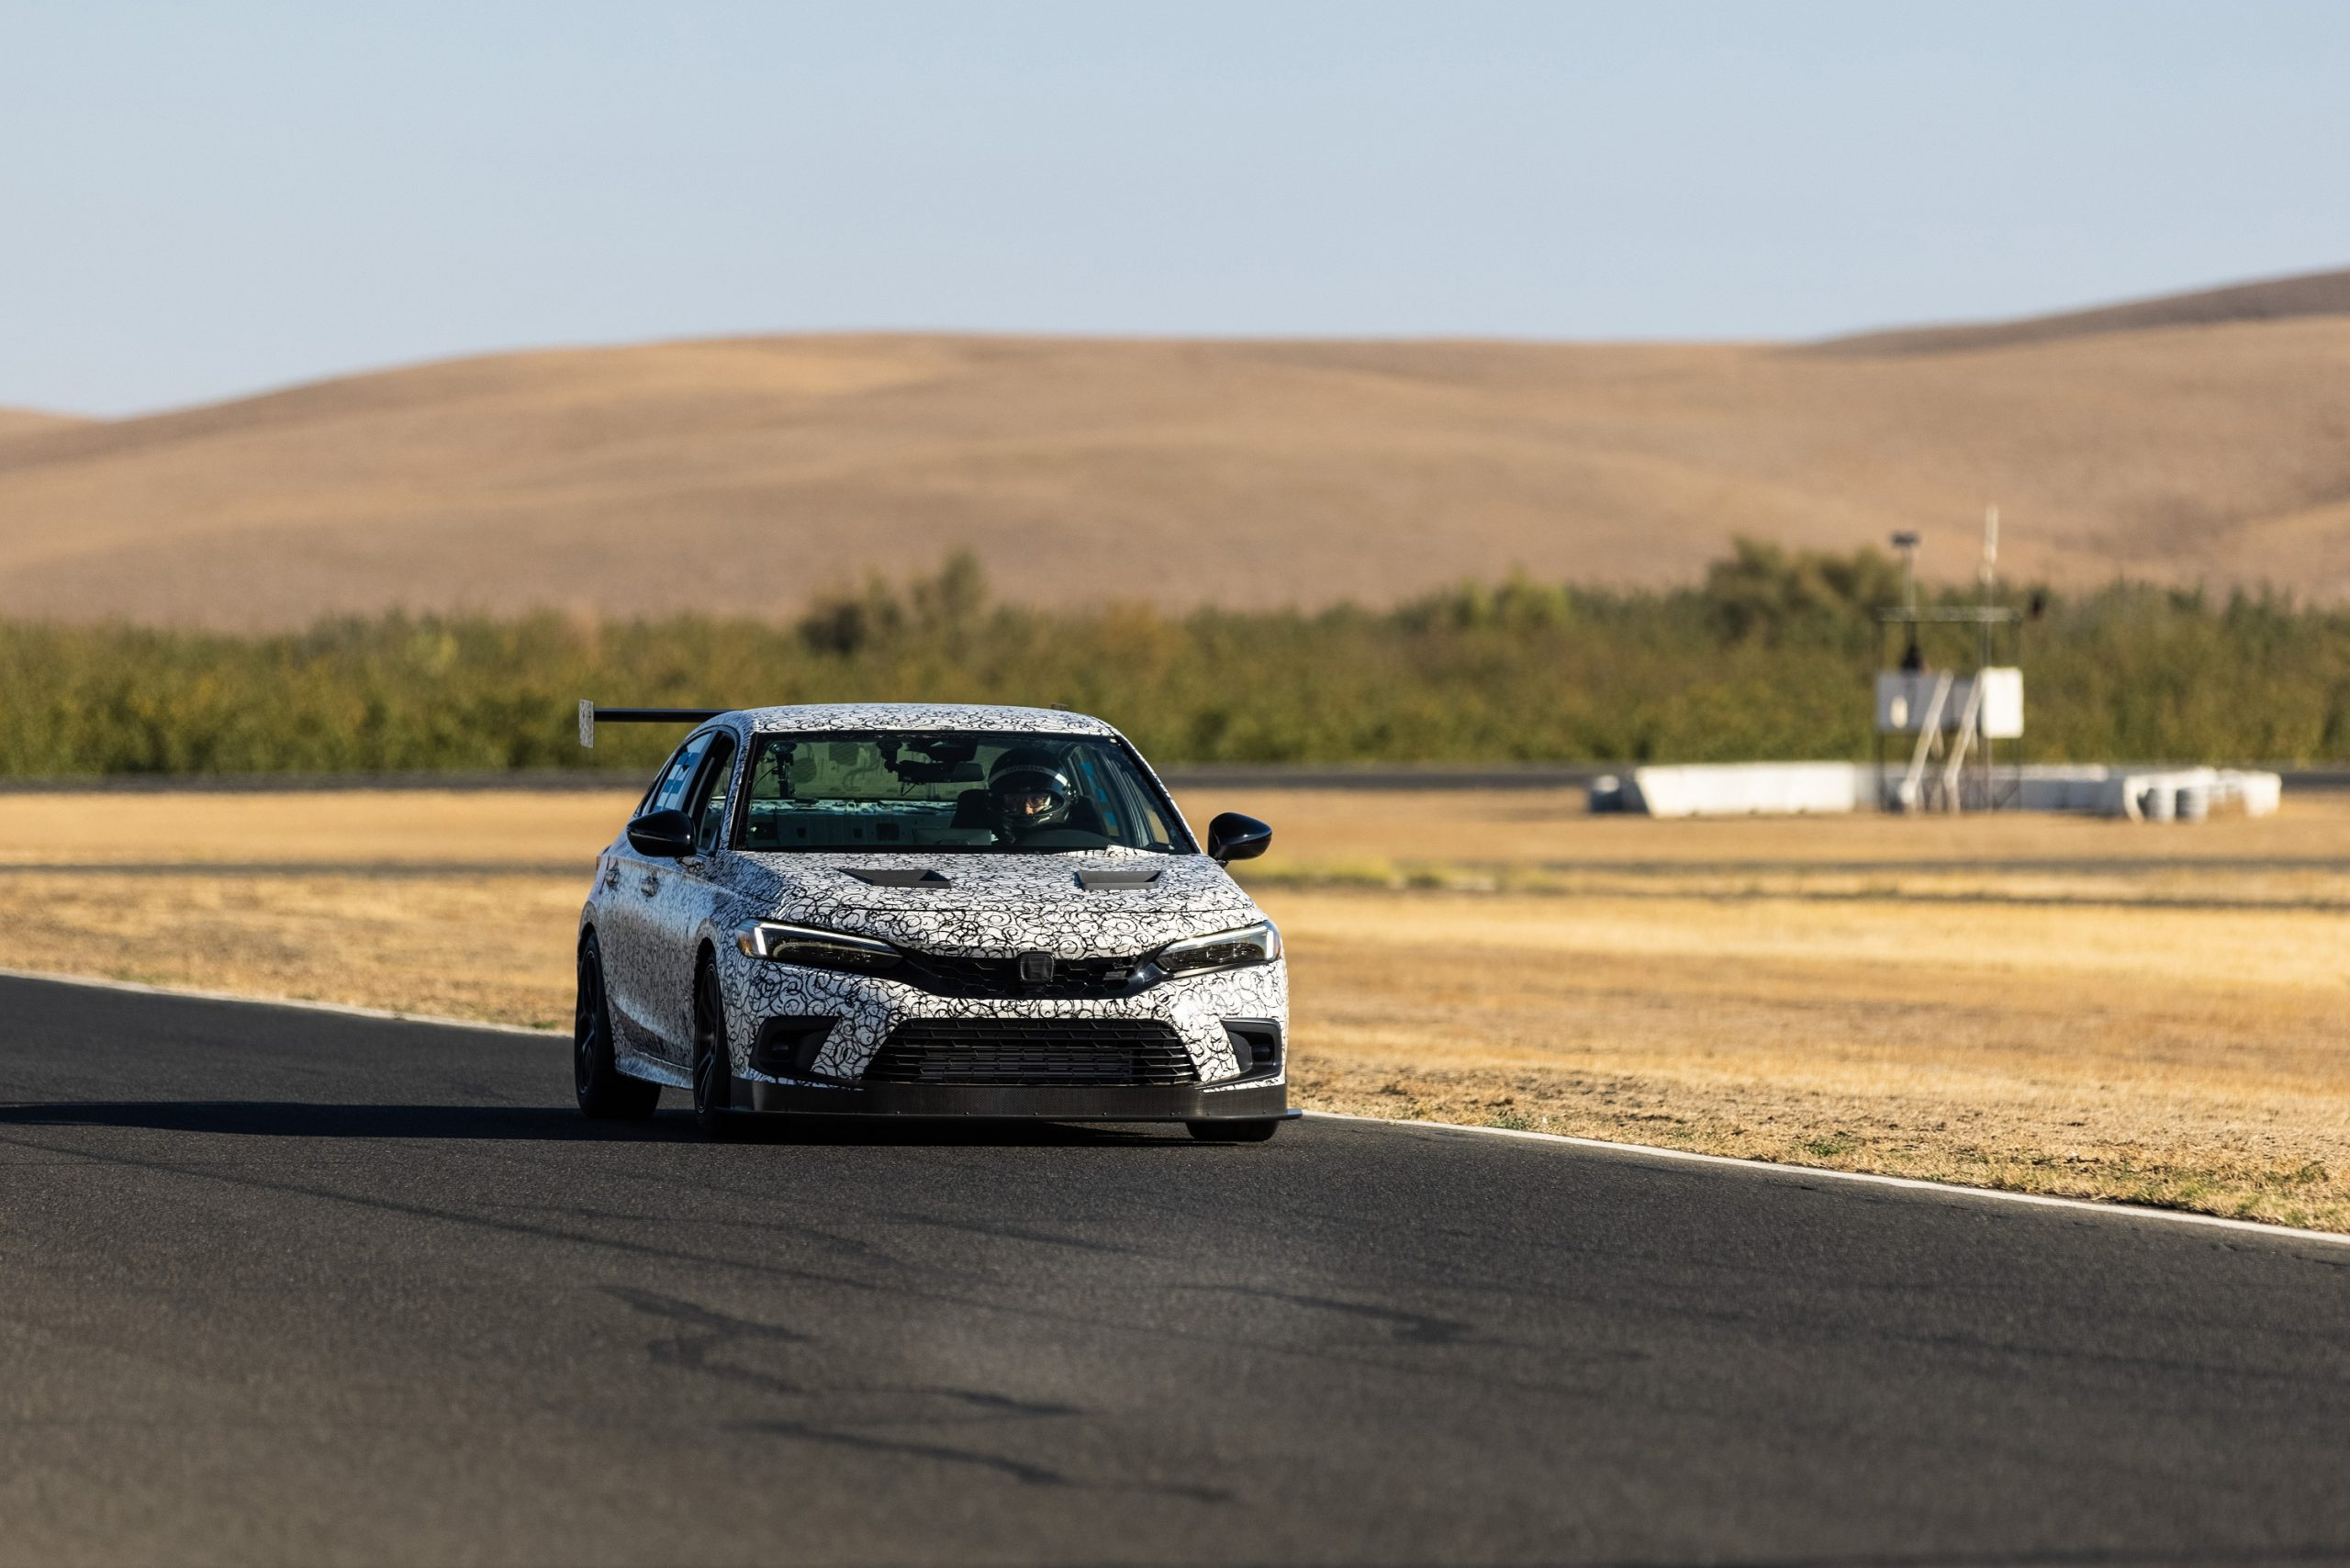 A camouflaged Honda Civic Si makes its way down the straight at a race track